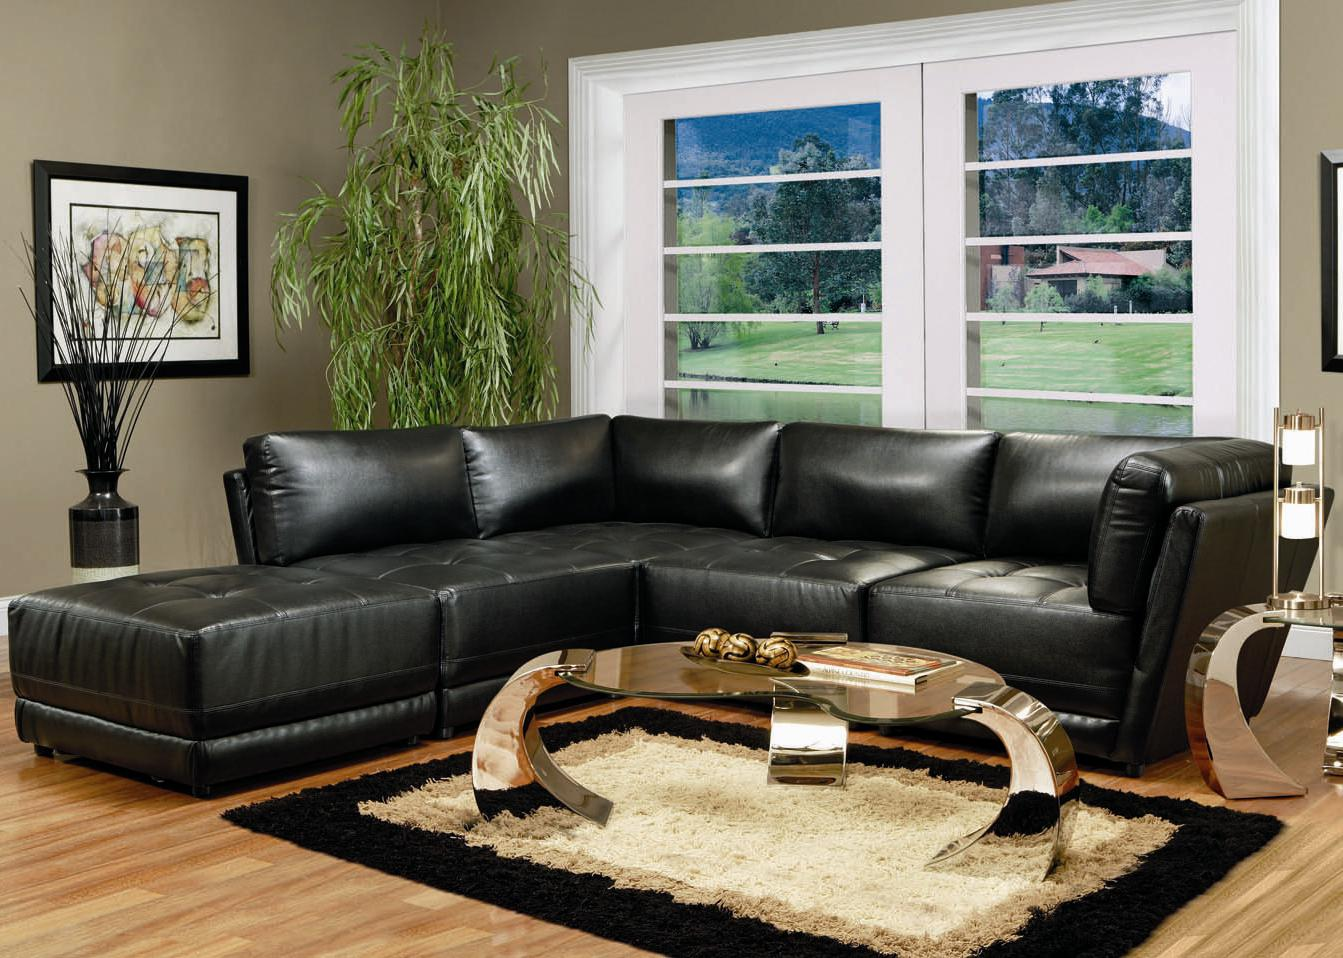 Swell Kayson Contemporary Leather Sectional Sofa Pabps2019 Chair Design Images Pabps2019Com